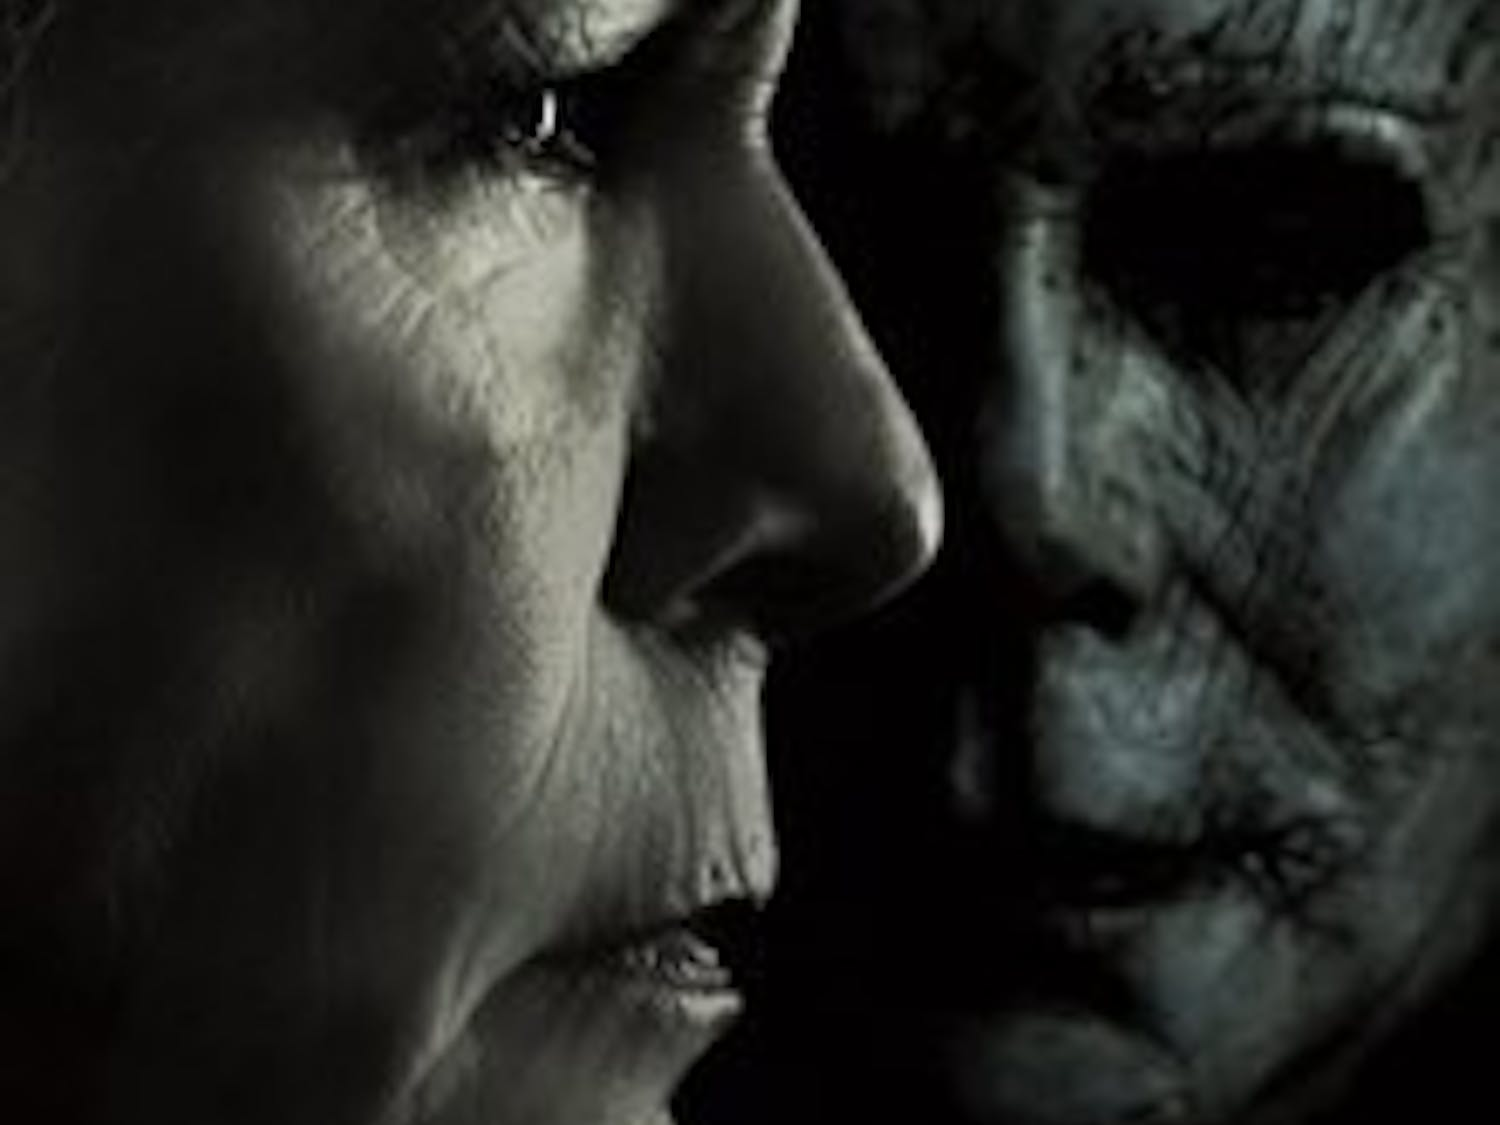 """""""Halloween"""" reinvigorates the franchise with a fresh take on the original 1978 film. By ignoring every sequel, director David Gordon Green pays homage to the horror classic without compromising narrative and suspense."""